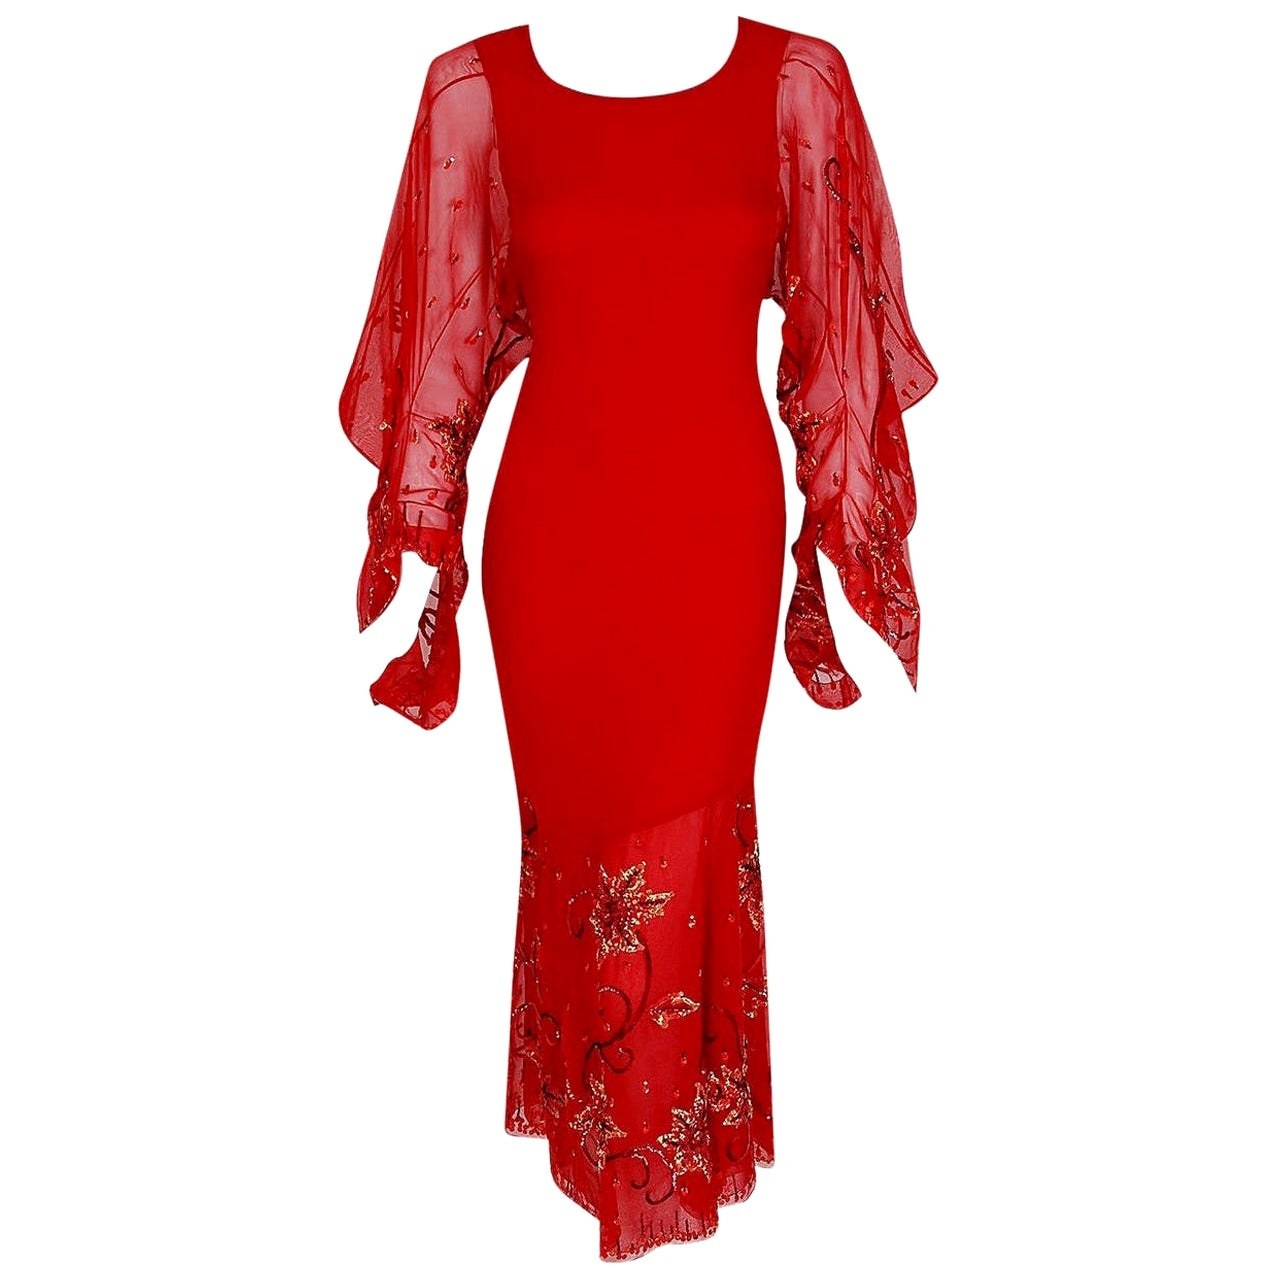 Vintage 2003 Christian Dior Haute-Couture Red Beaded Silk Kimono Sleeve Dress